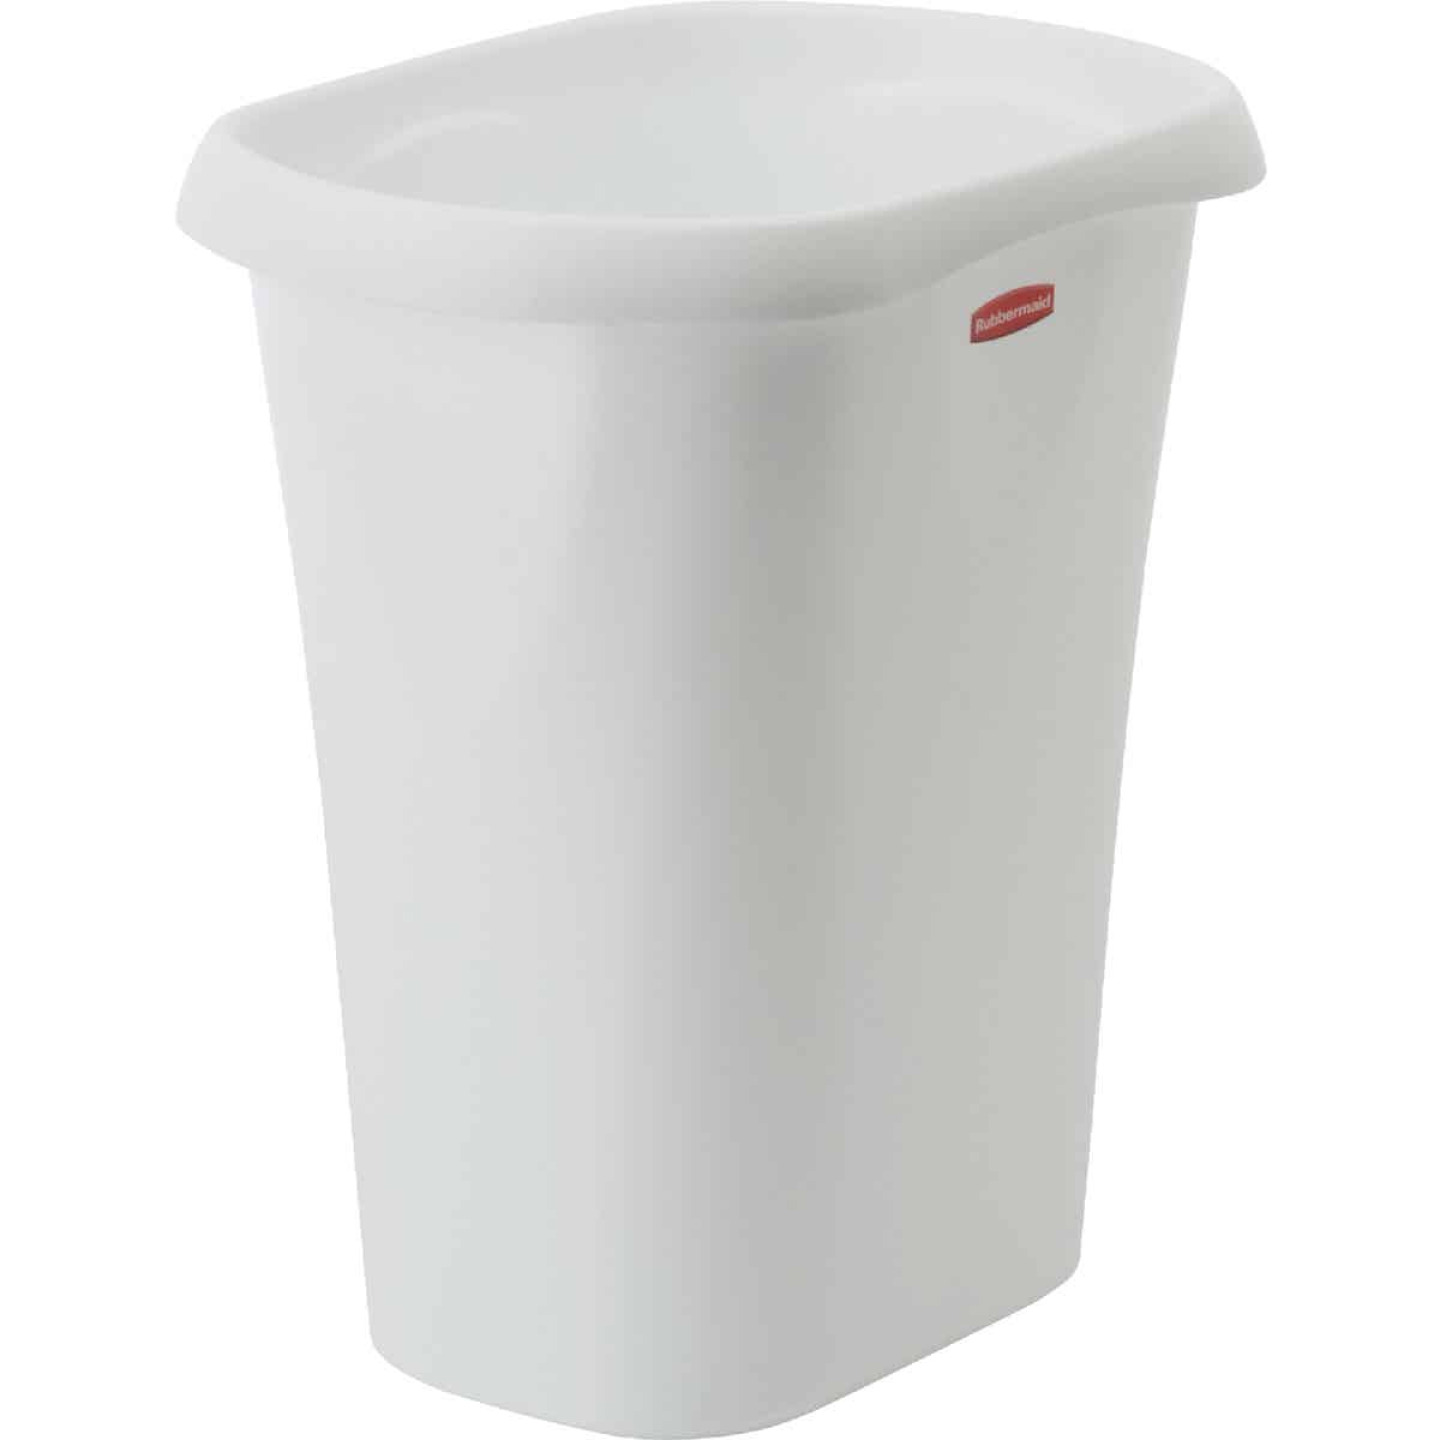 Rubbermaid 12 Qt. White Wastebasket Image 1